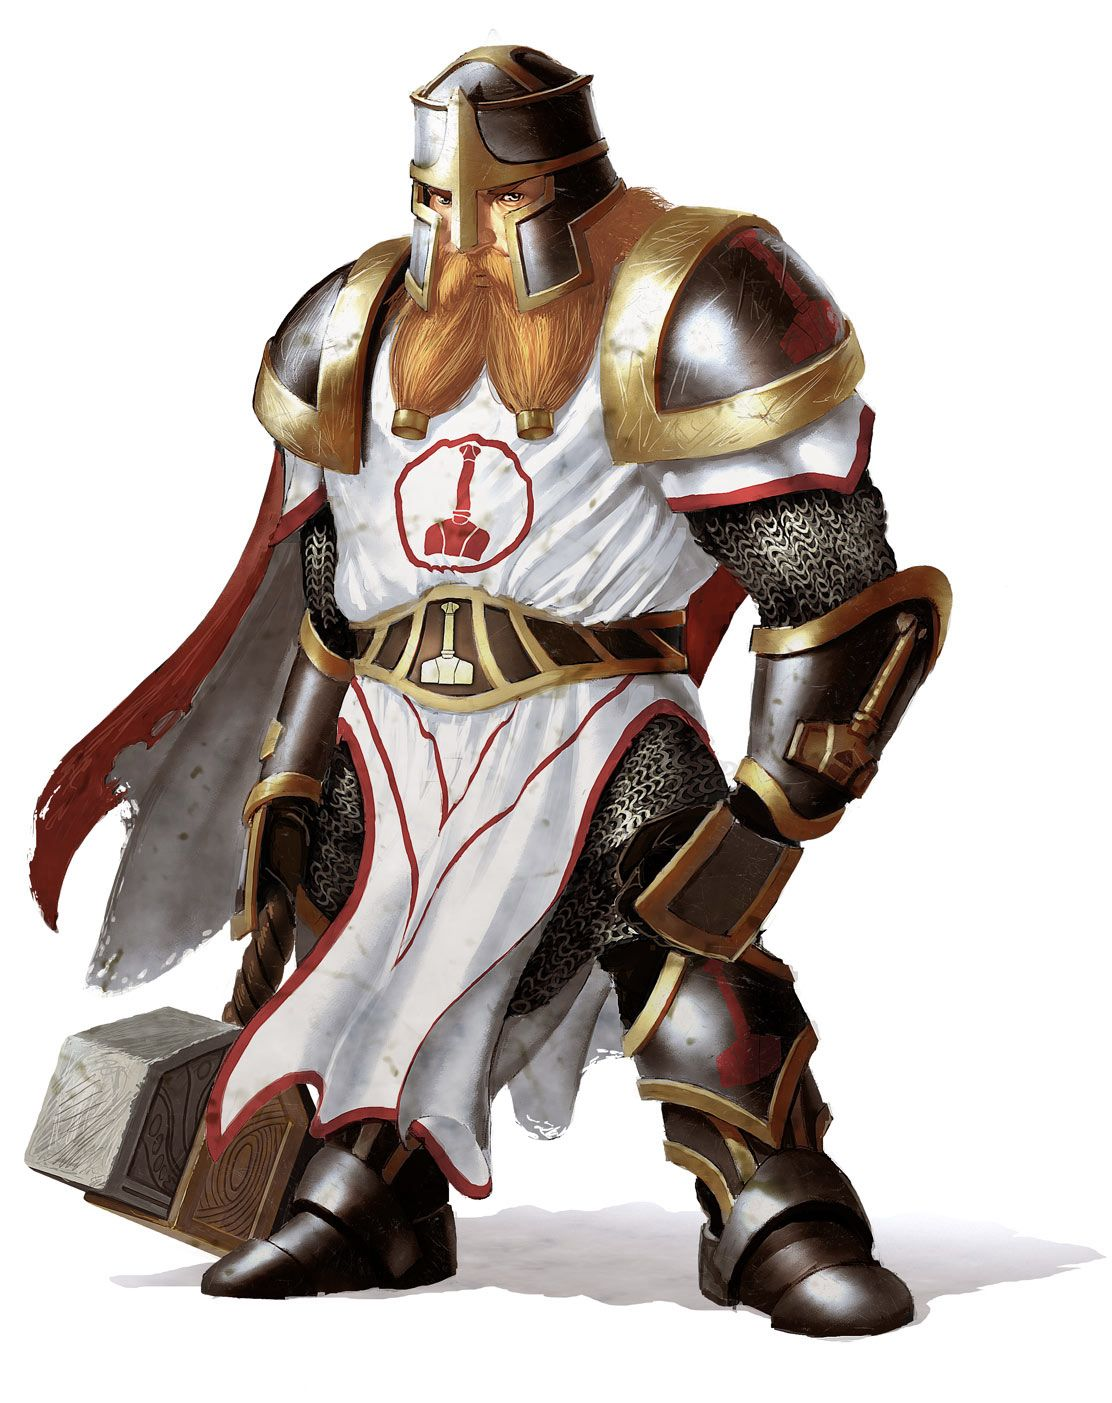 Fantasy Cleric | Tuesday, October 25, 2011